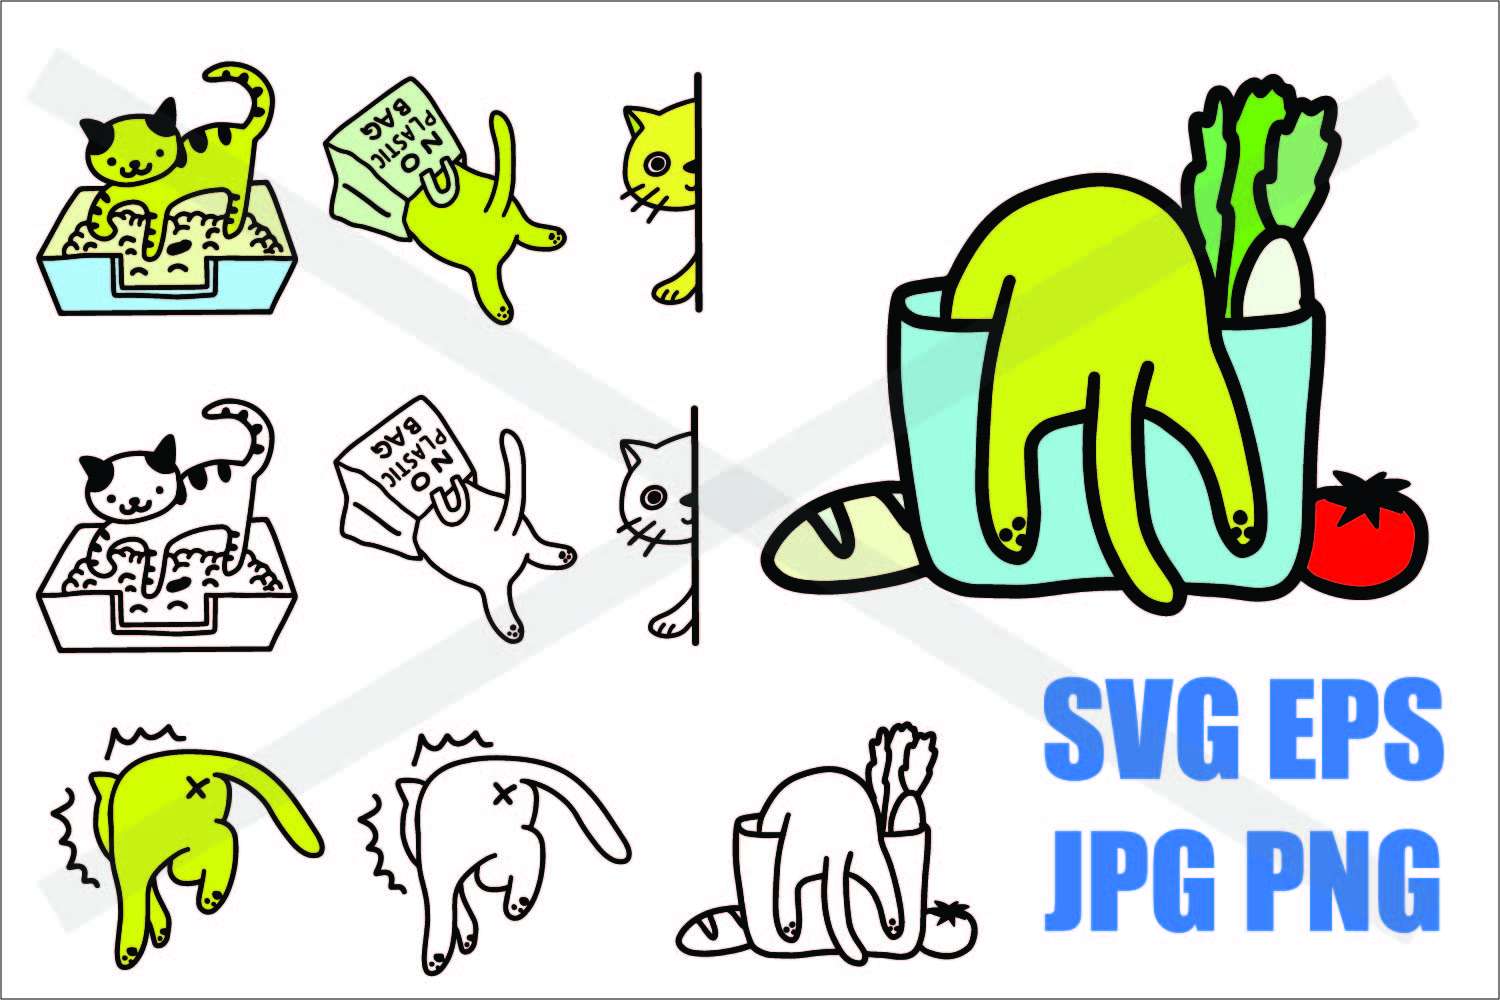 Cat in Action - SVG EPS JPG PNG example image 1